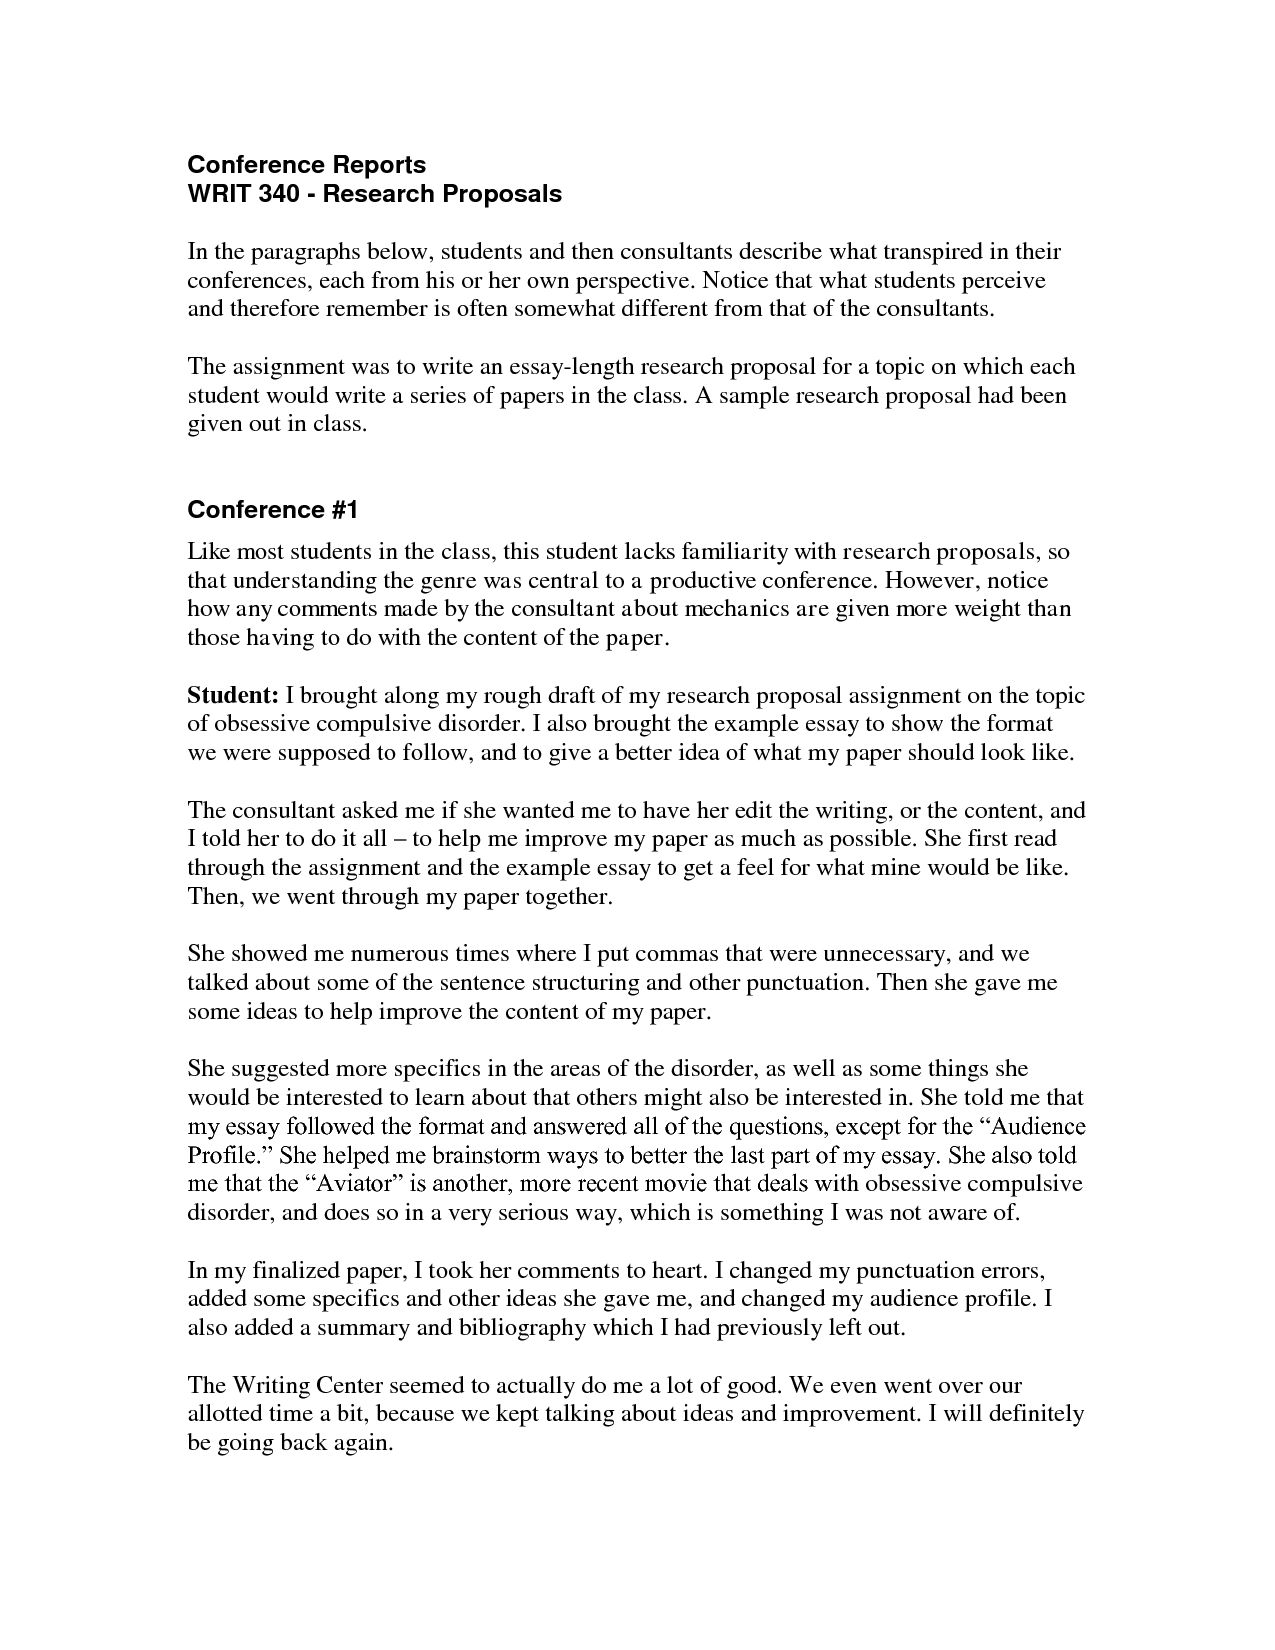 023 Ideas To Write Research Paper On What Can I My Dreaded A Good Full